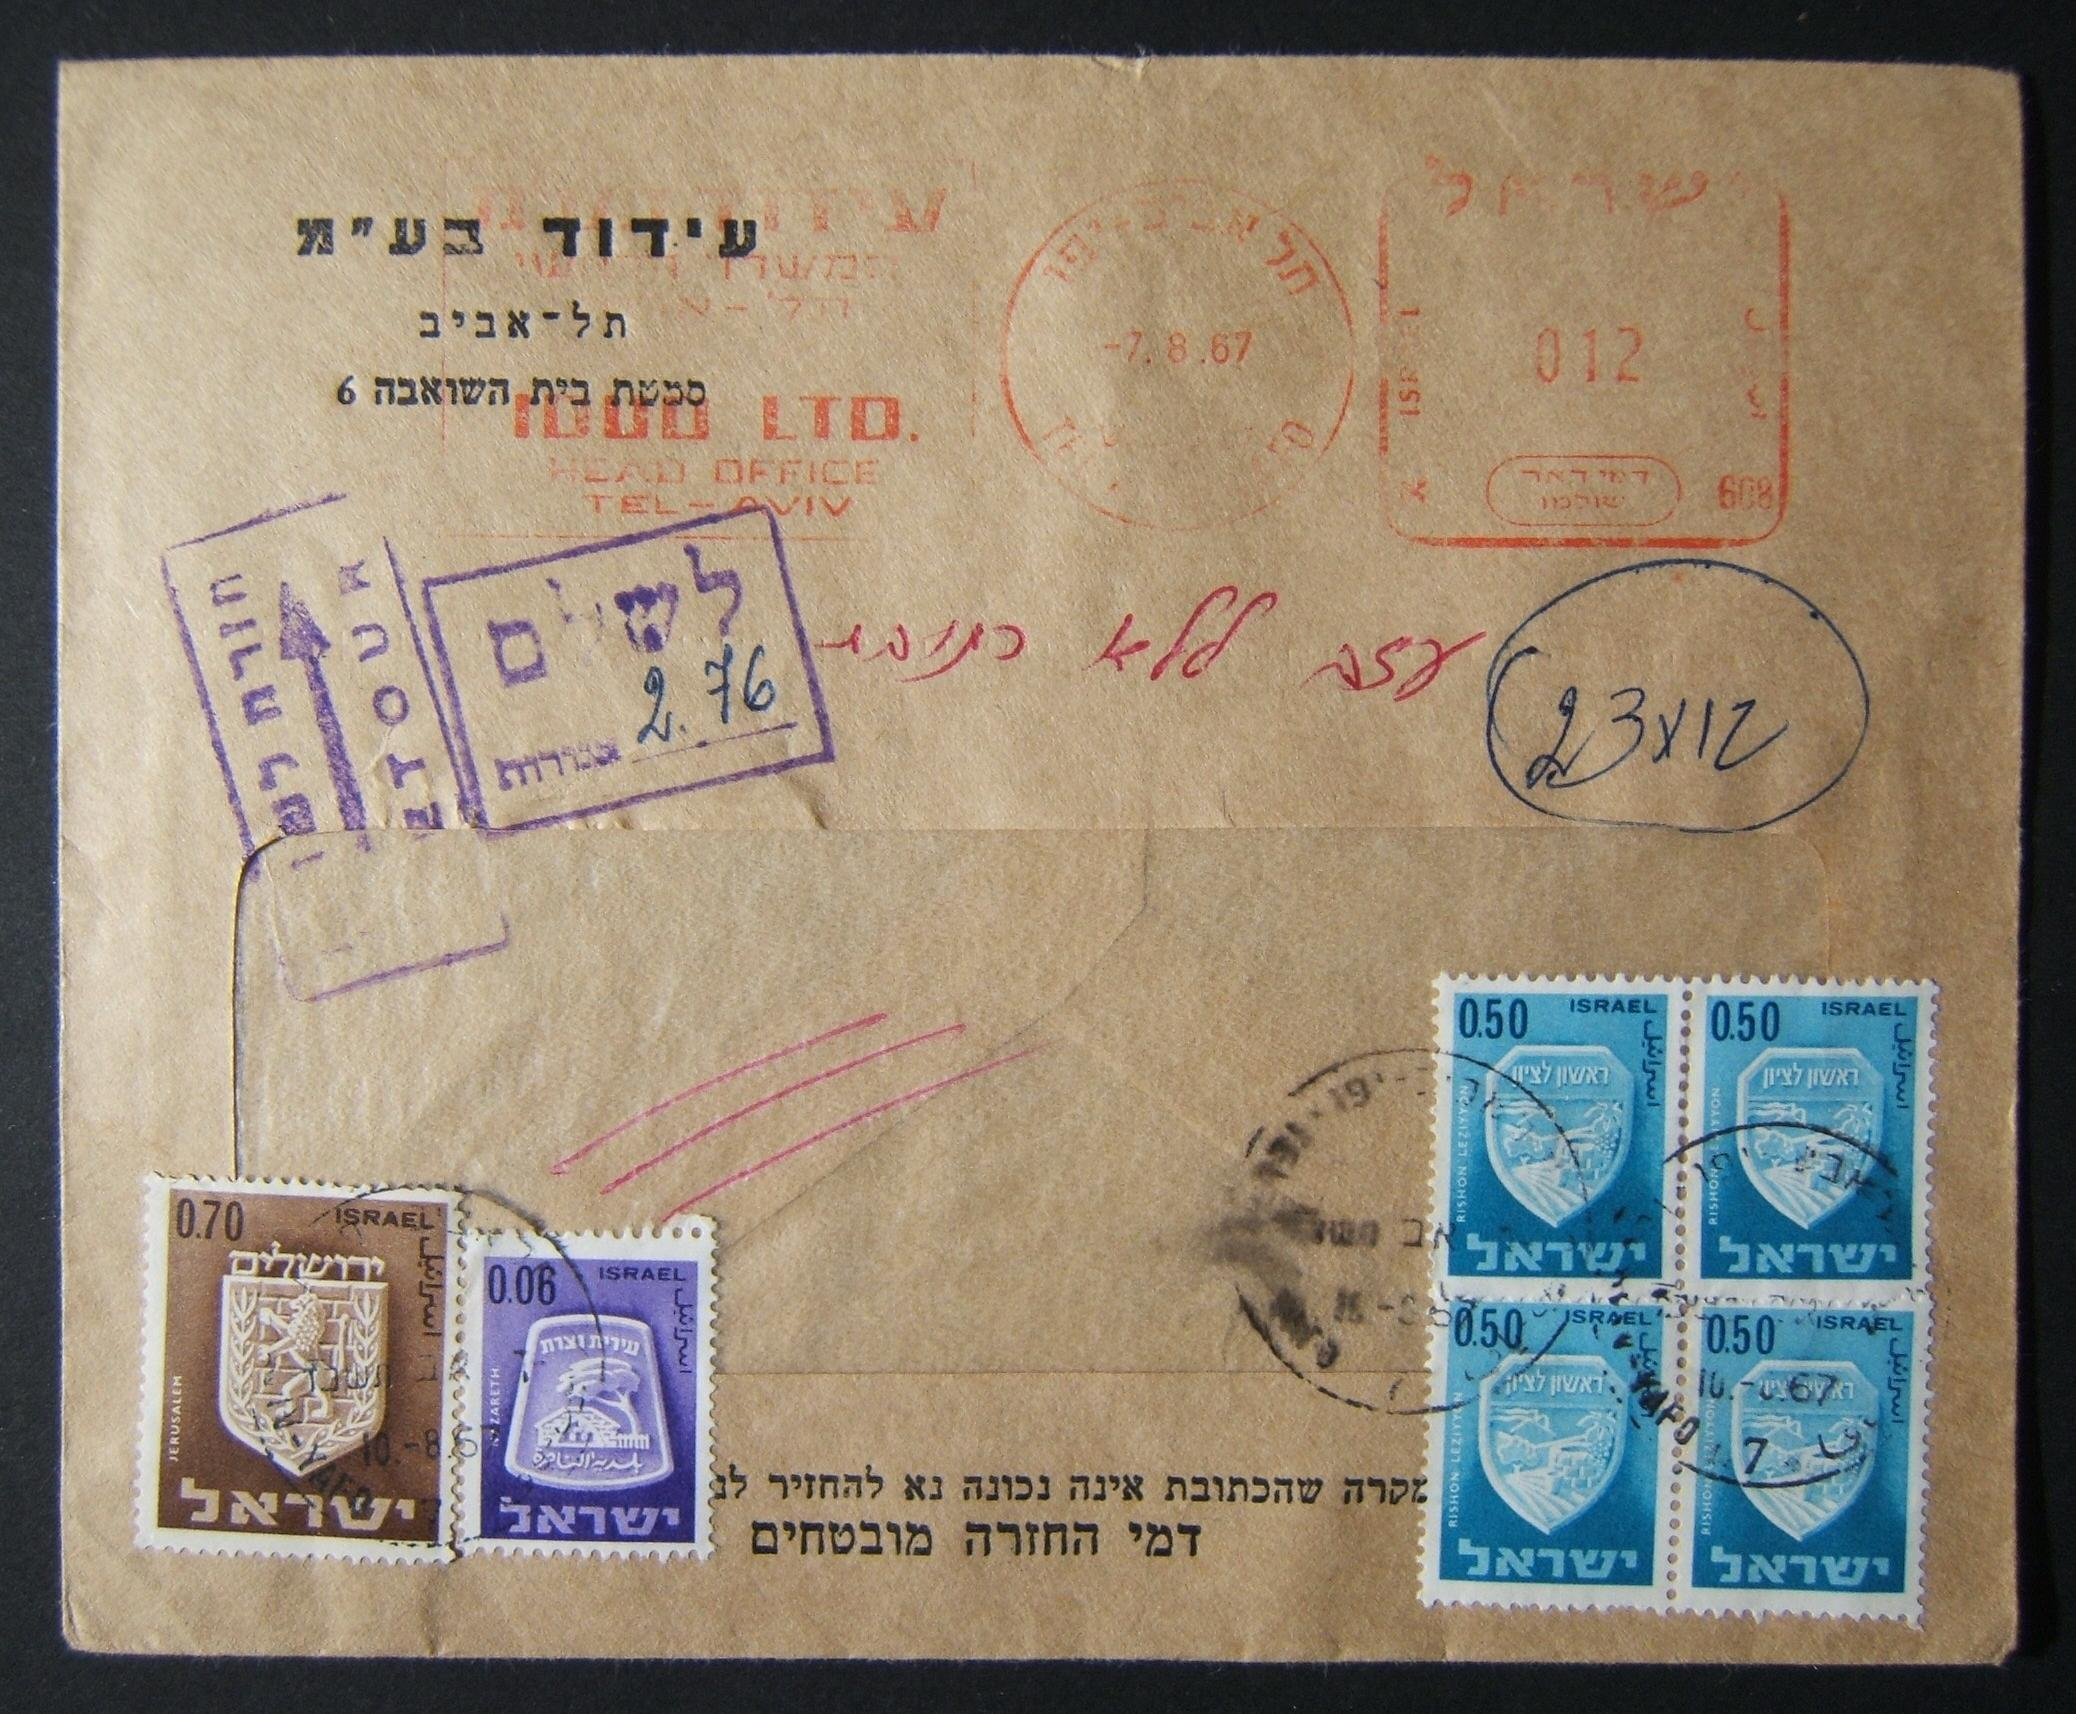 1967 domestic 'top of the pile' taxed franking: 7-8-67 printed matter cover ex TLV branch of Idud Ltd., and franked by meter payment at the DO-12 period 12 Ag PM rate, returned to